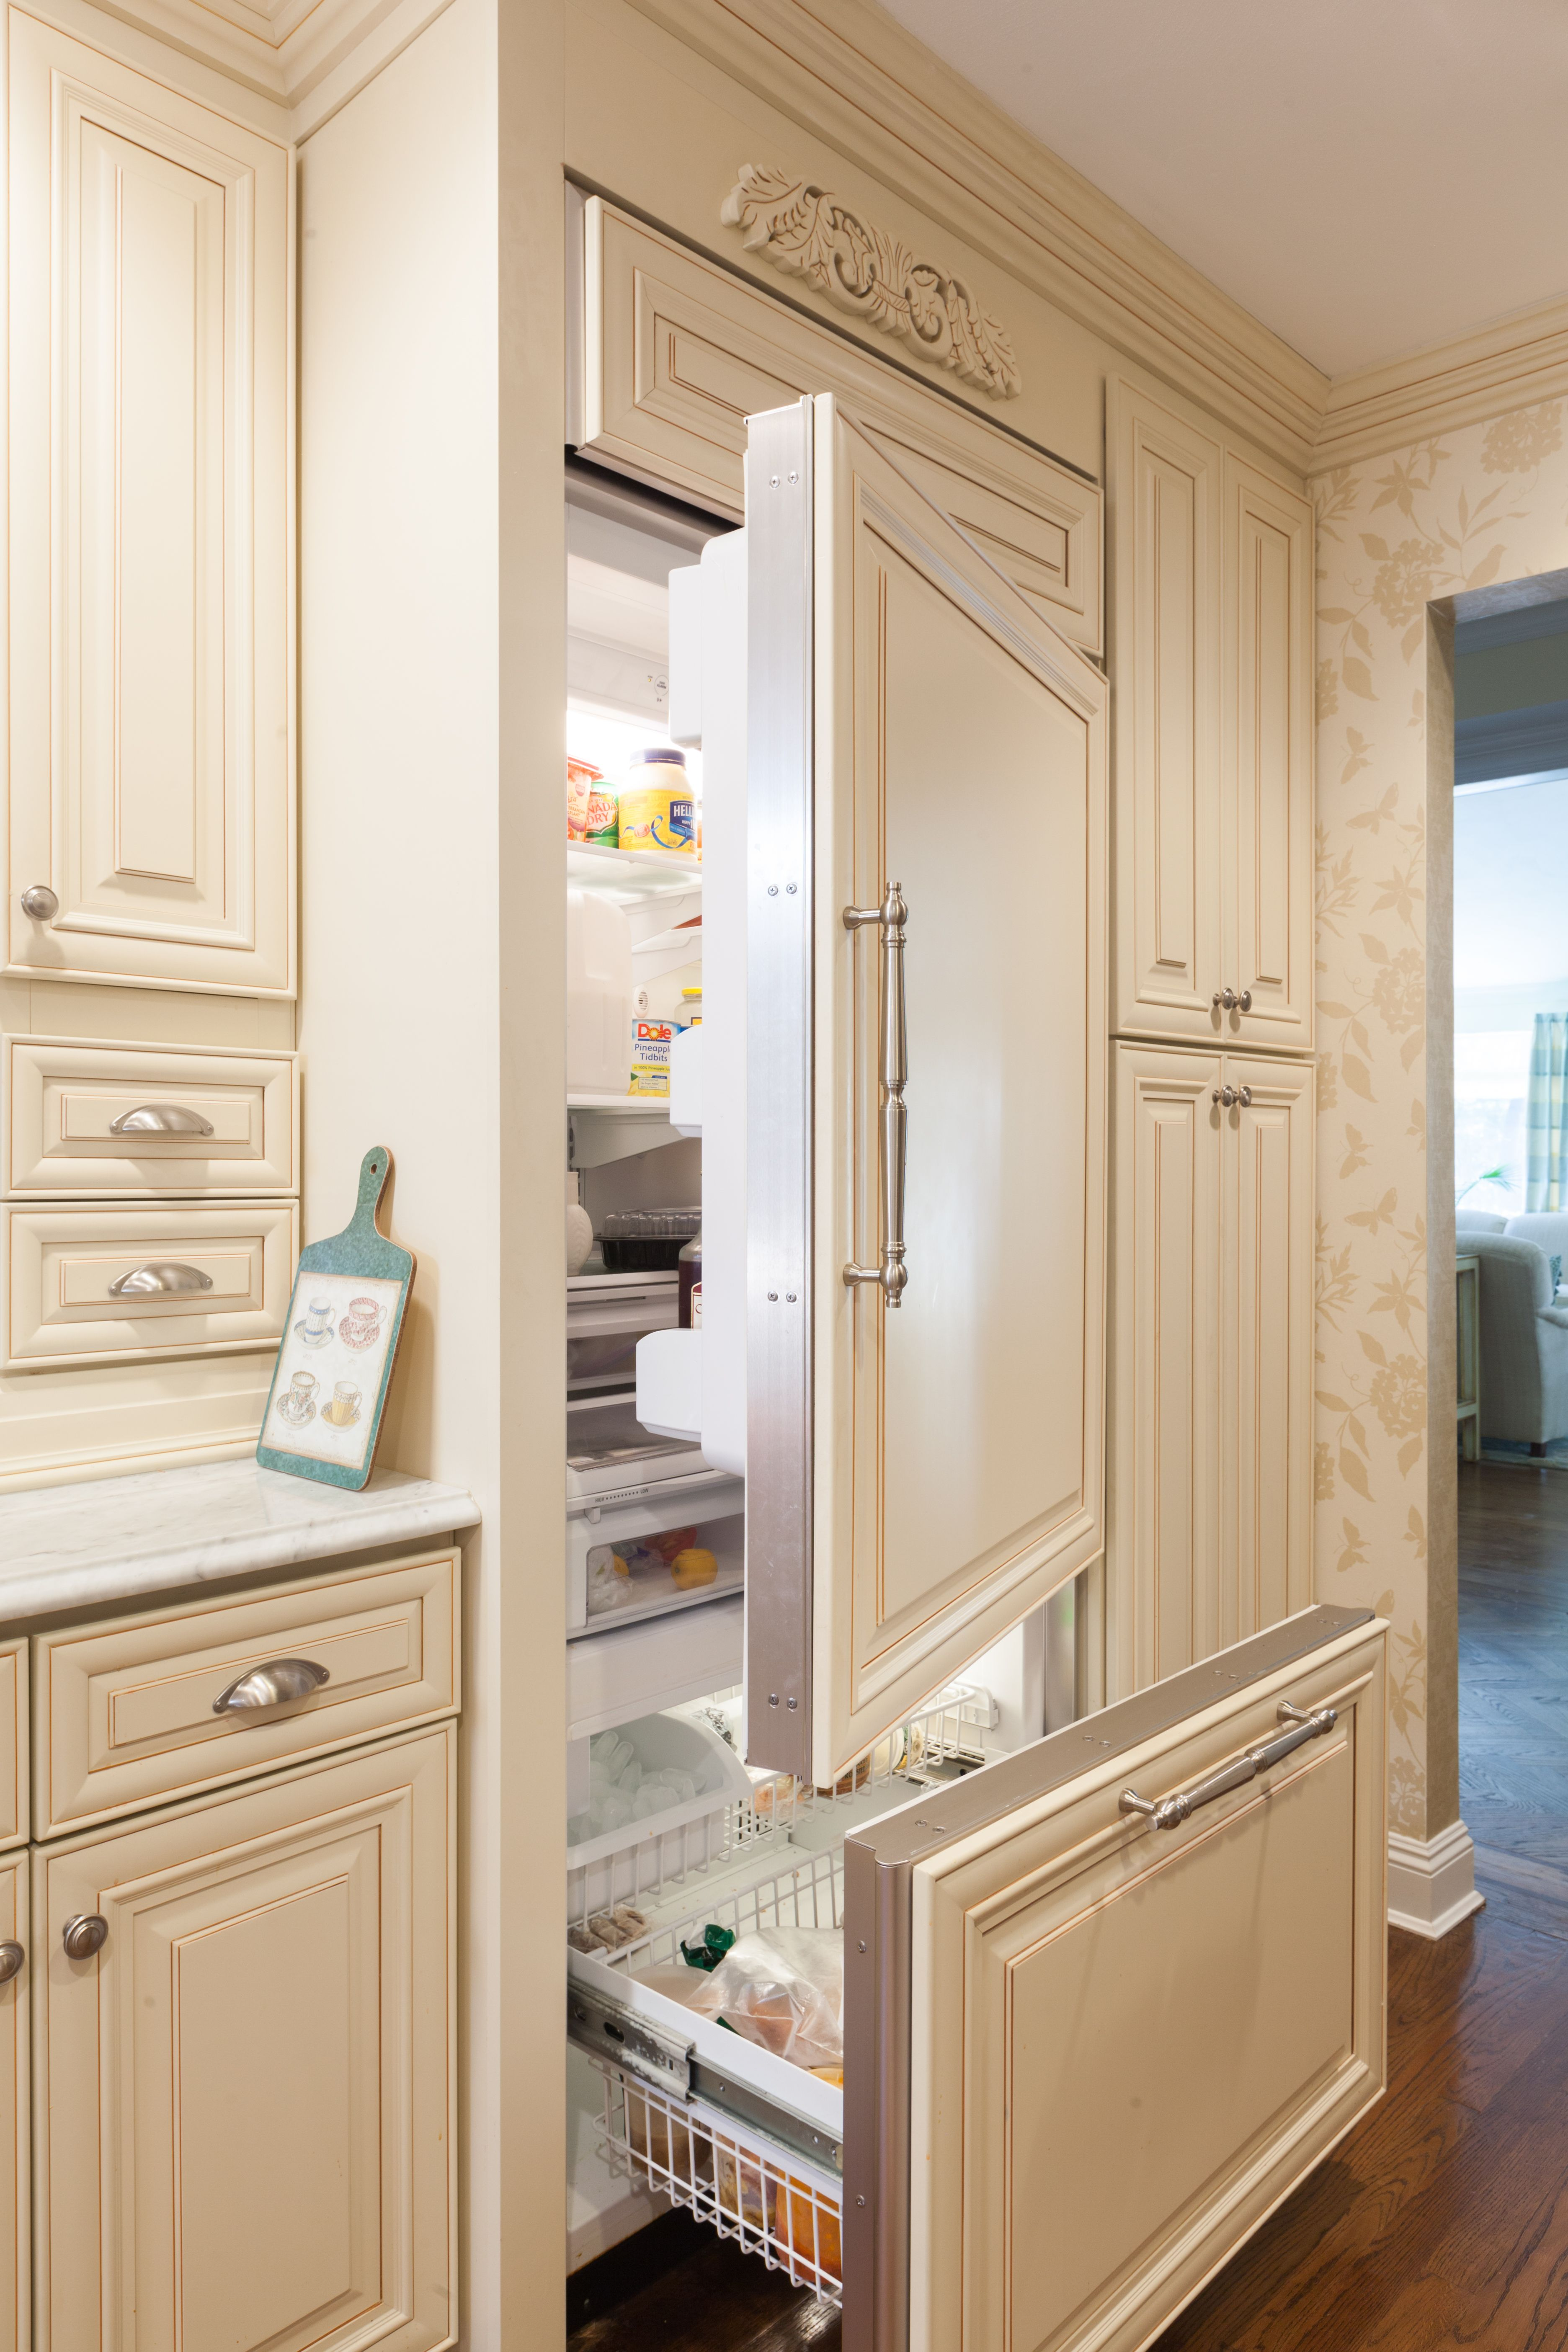 J K Cabinetry Traditional Cabinets Made From Maple Wood In A Creme Glazed Finish Style A7 Panel Ready Refrigerator Luxury Kitchens Traditional Cabinets